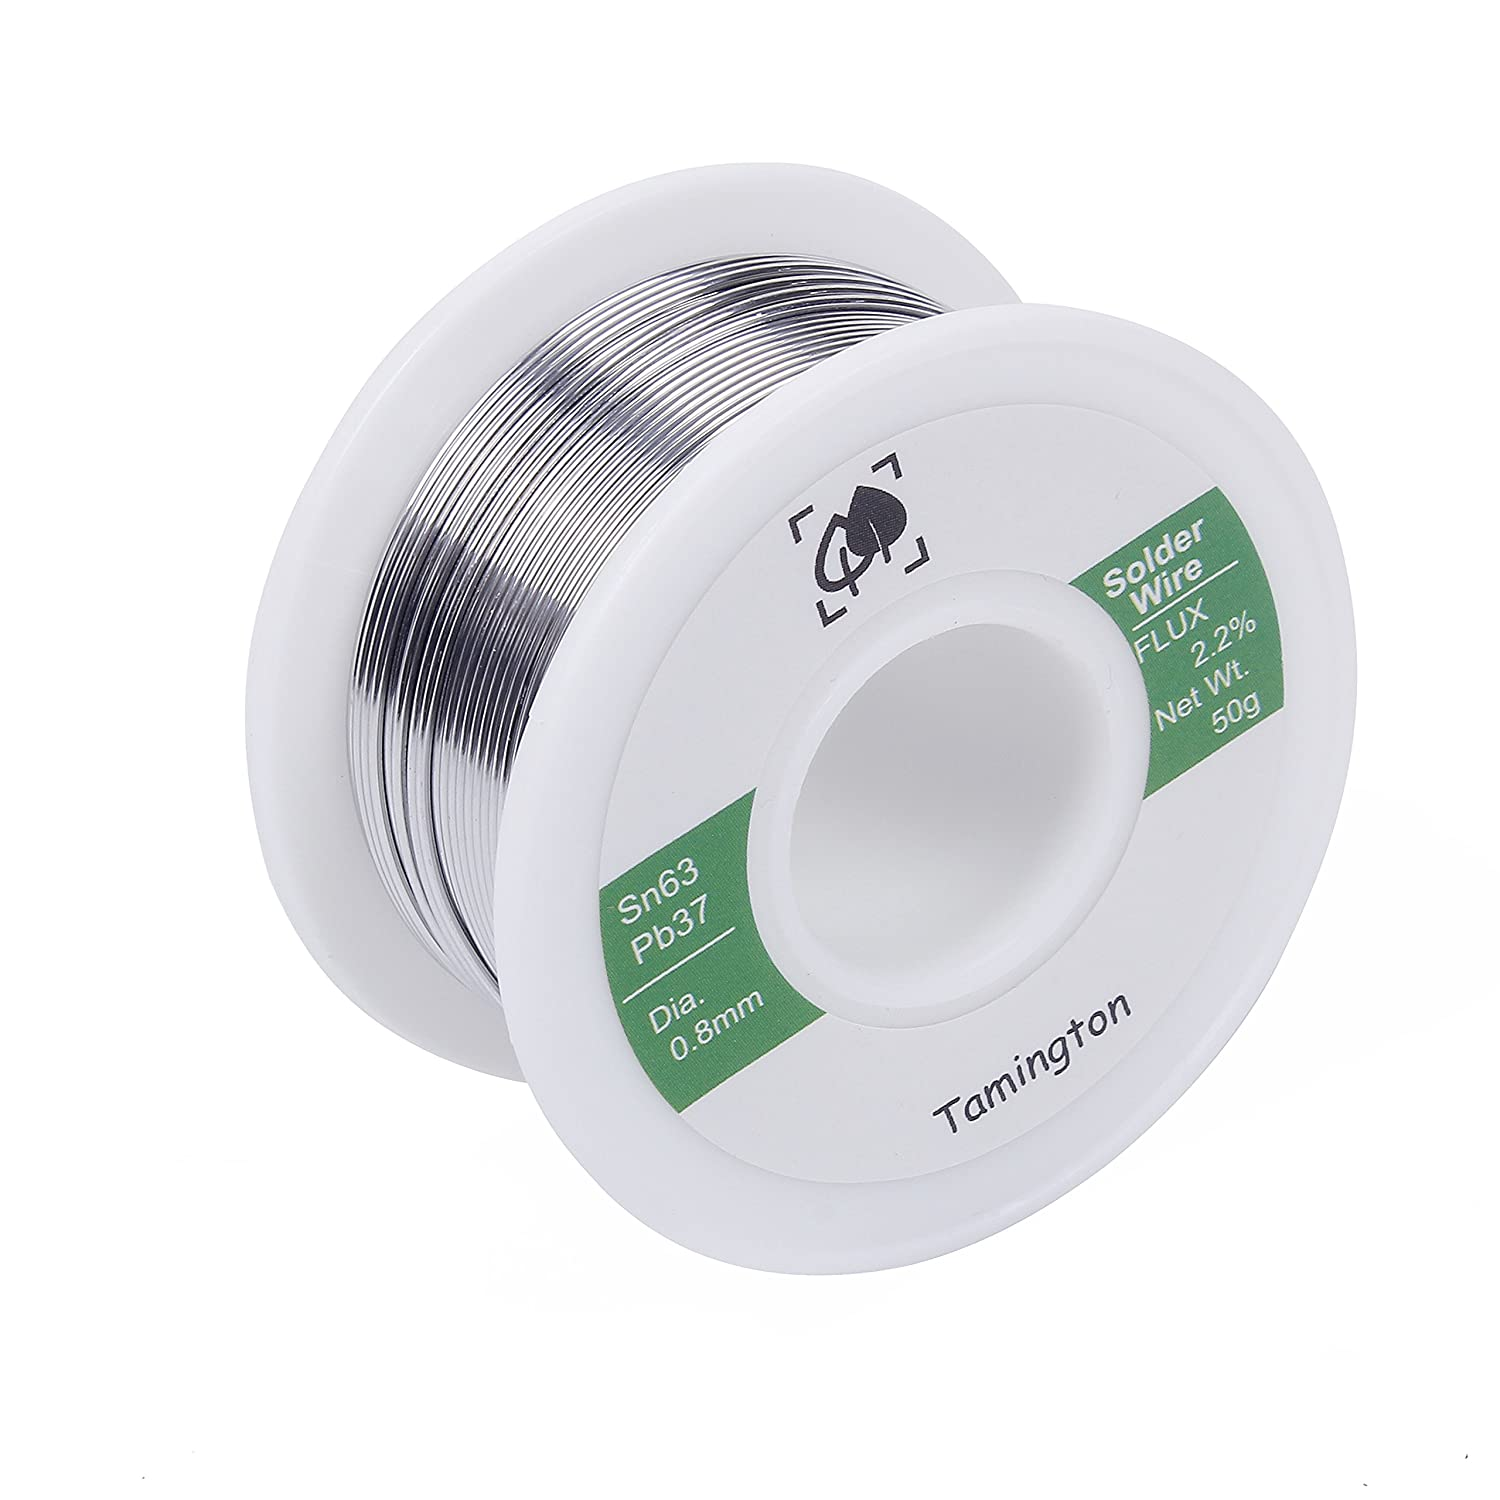 Solder Wire Sn63 Pb37 with Rosin Core for Electrical Soldering 50g 0.8 mm by TAMINGTON